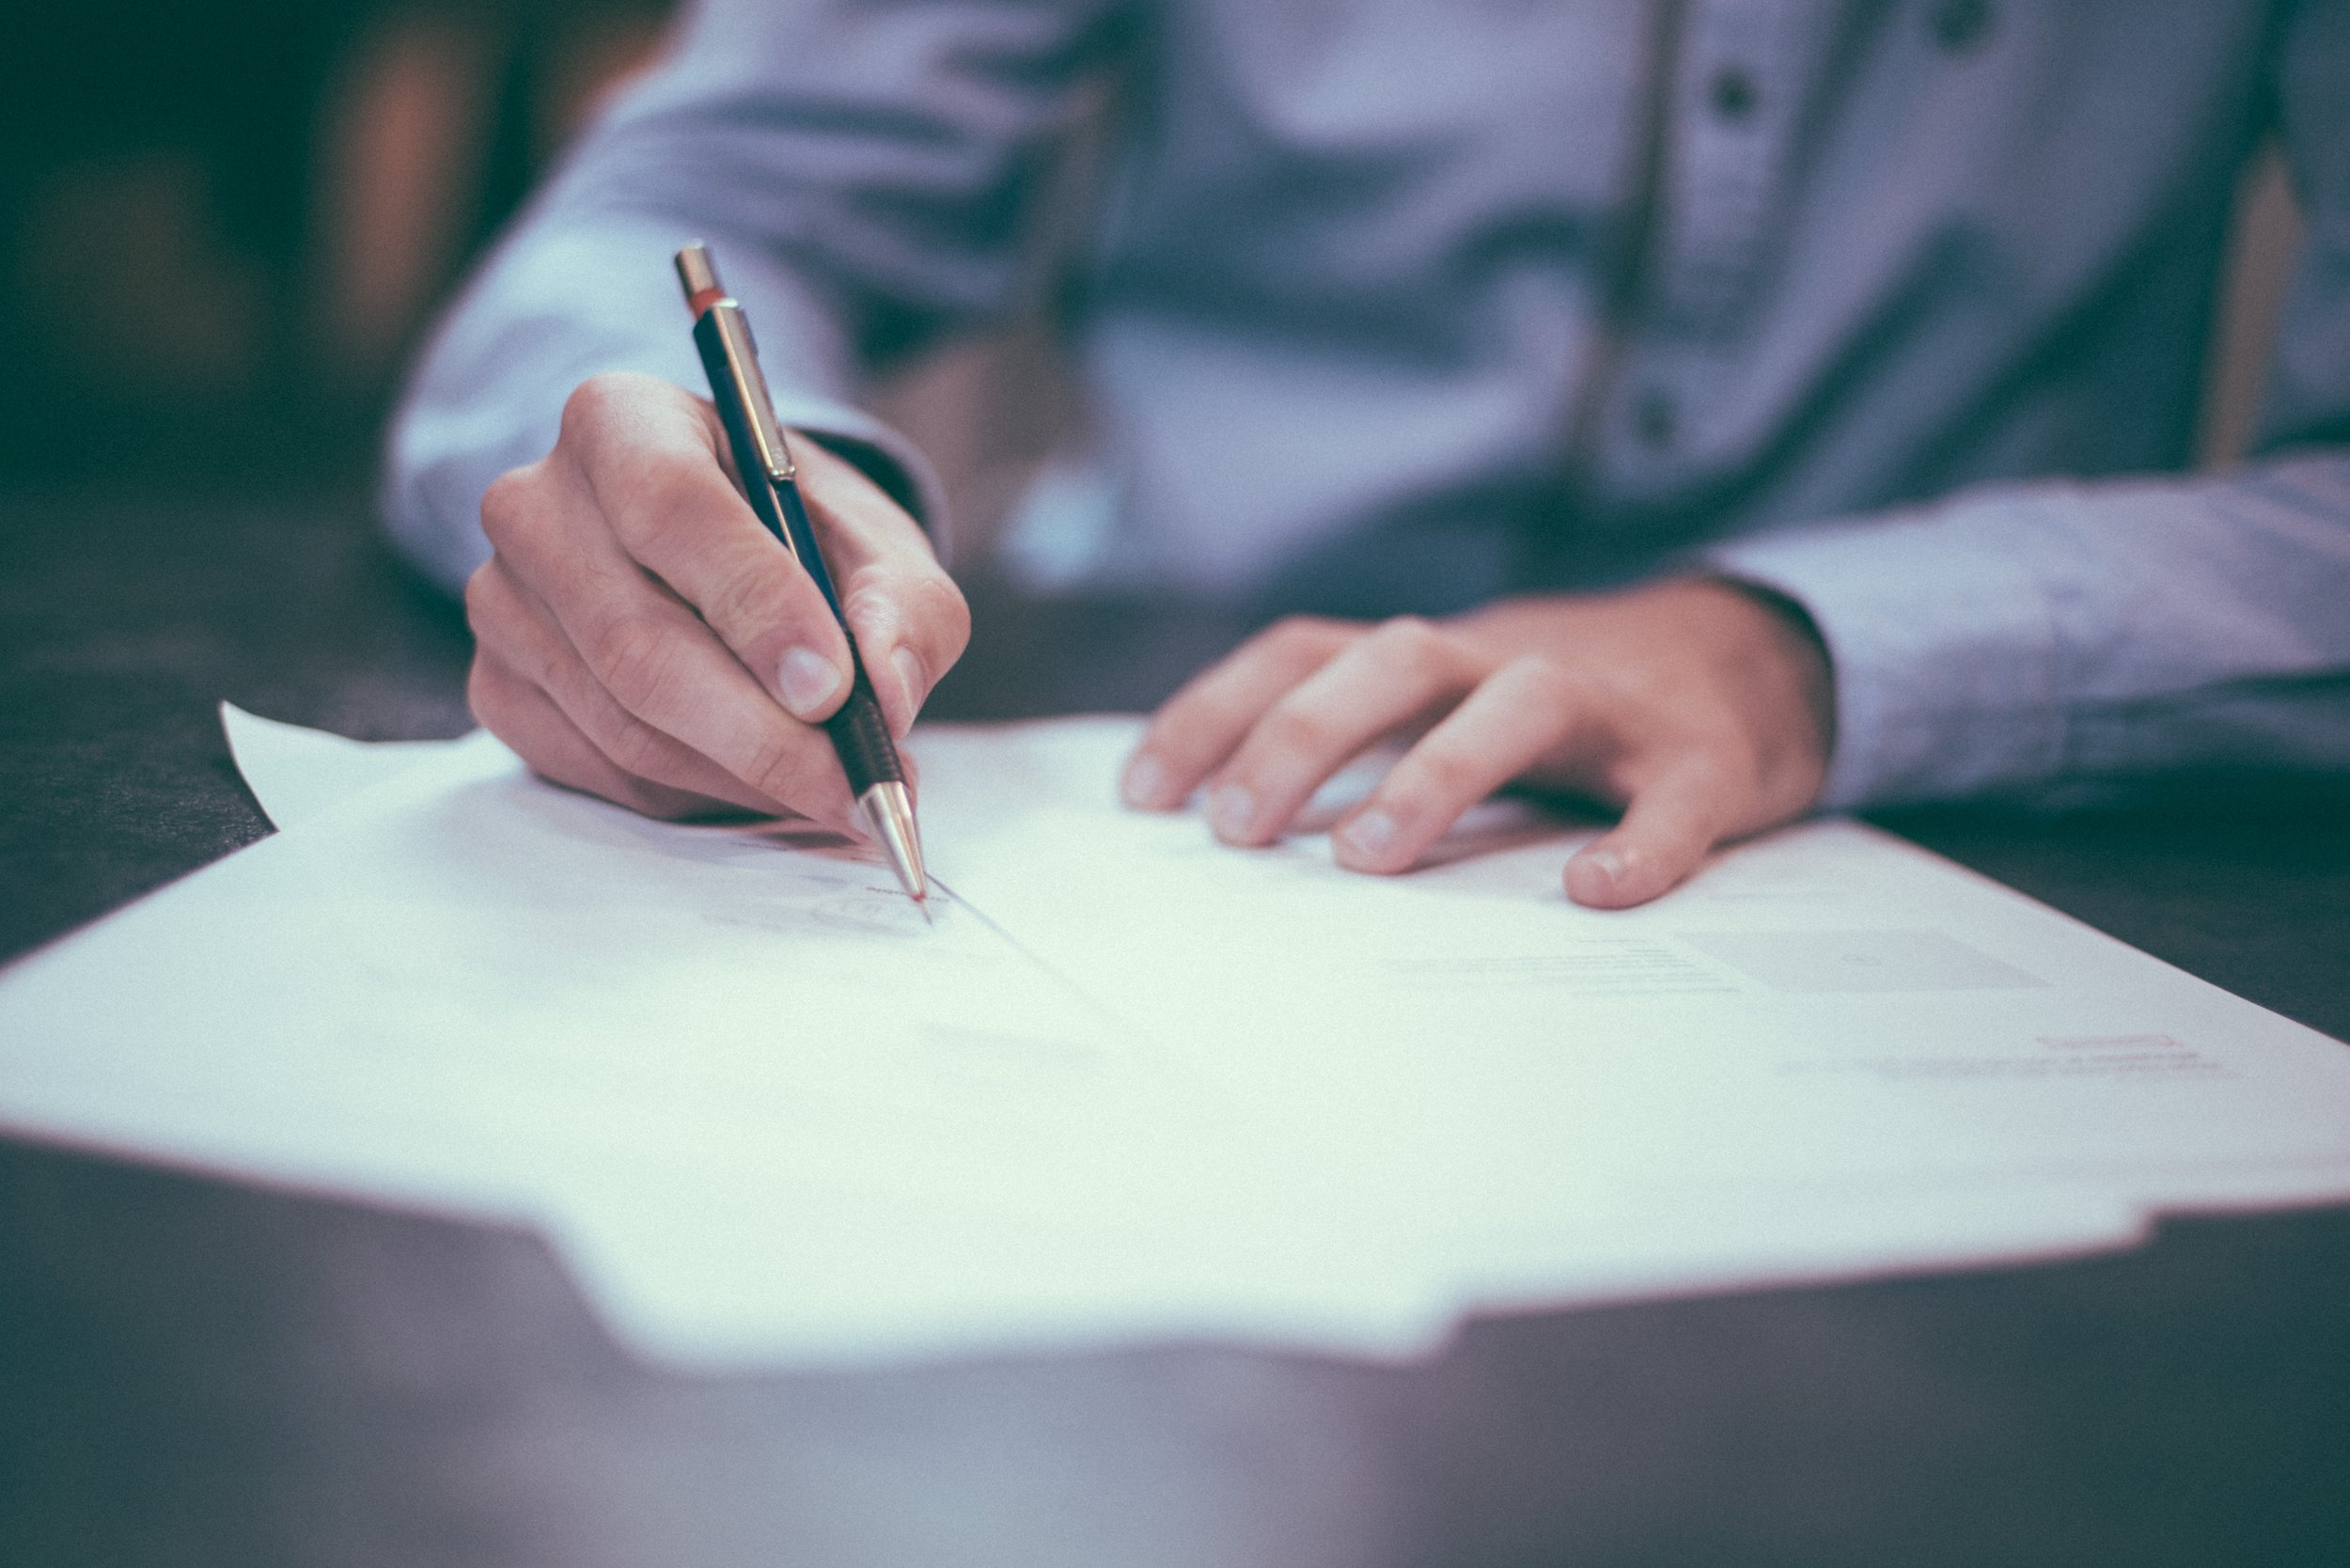 Photograph: Close-up of man's hand holding a pen while signing a document.